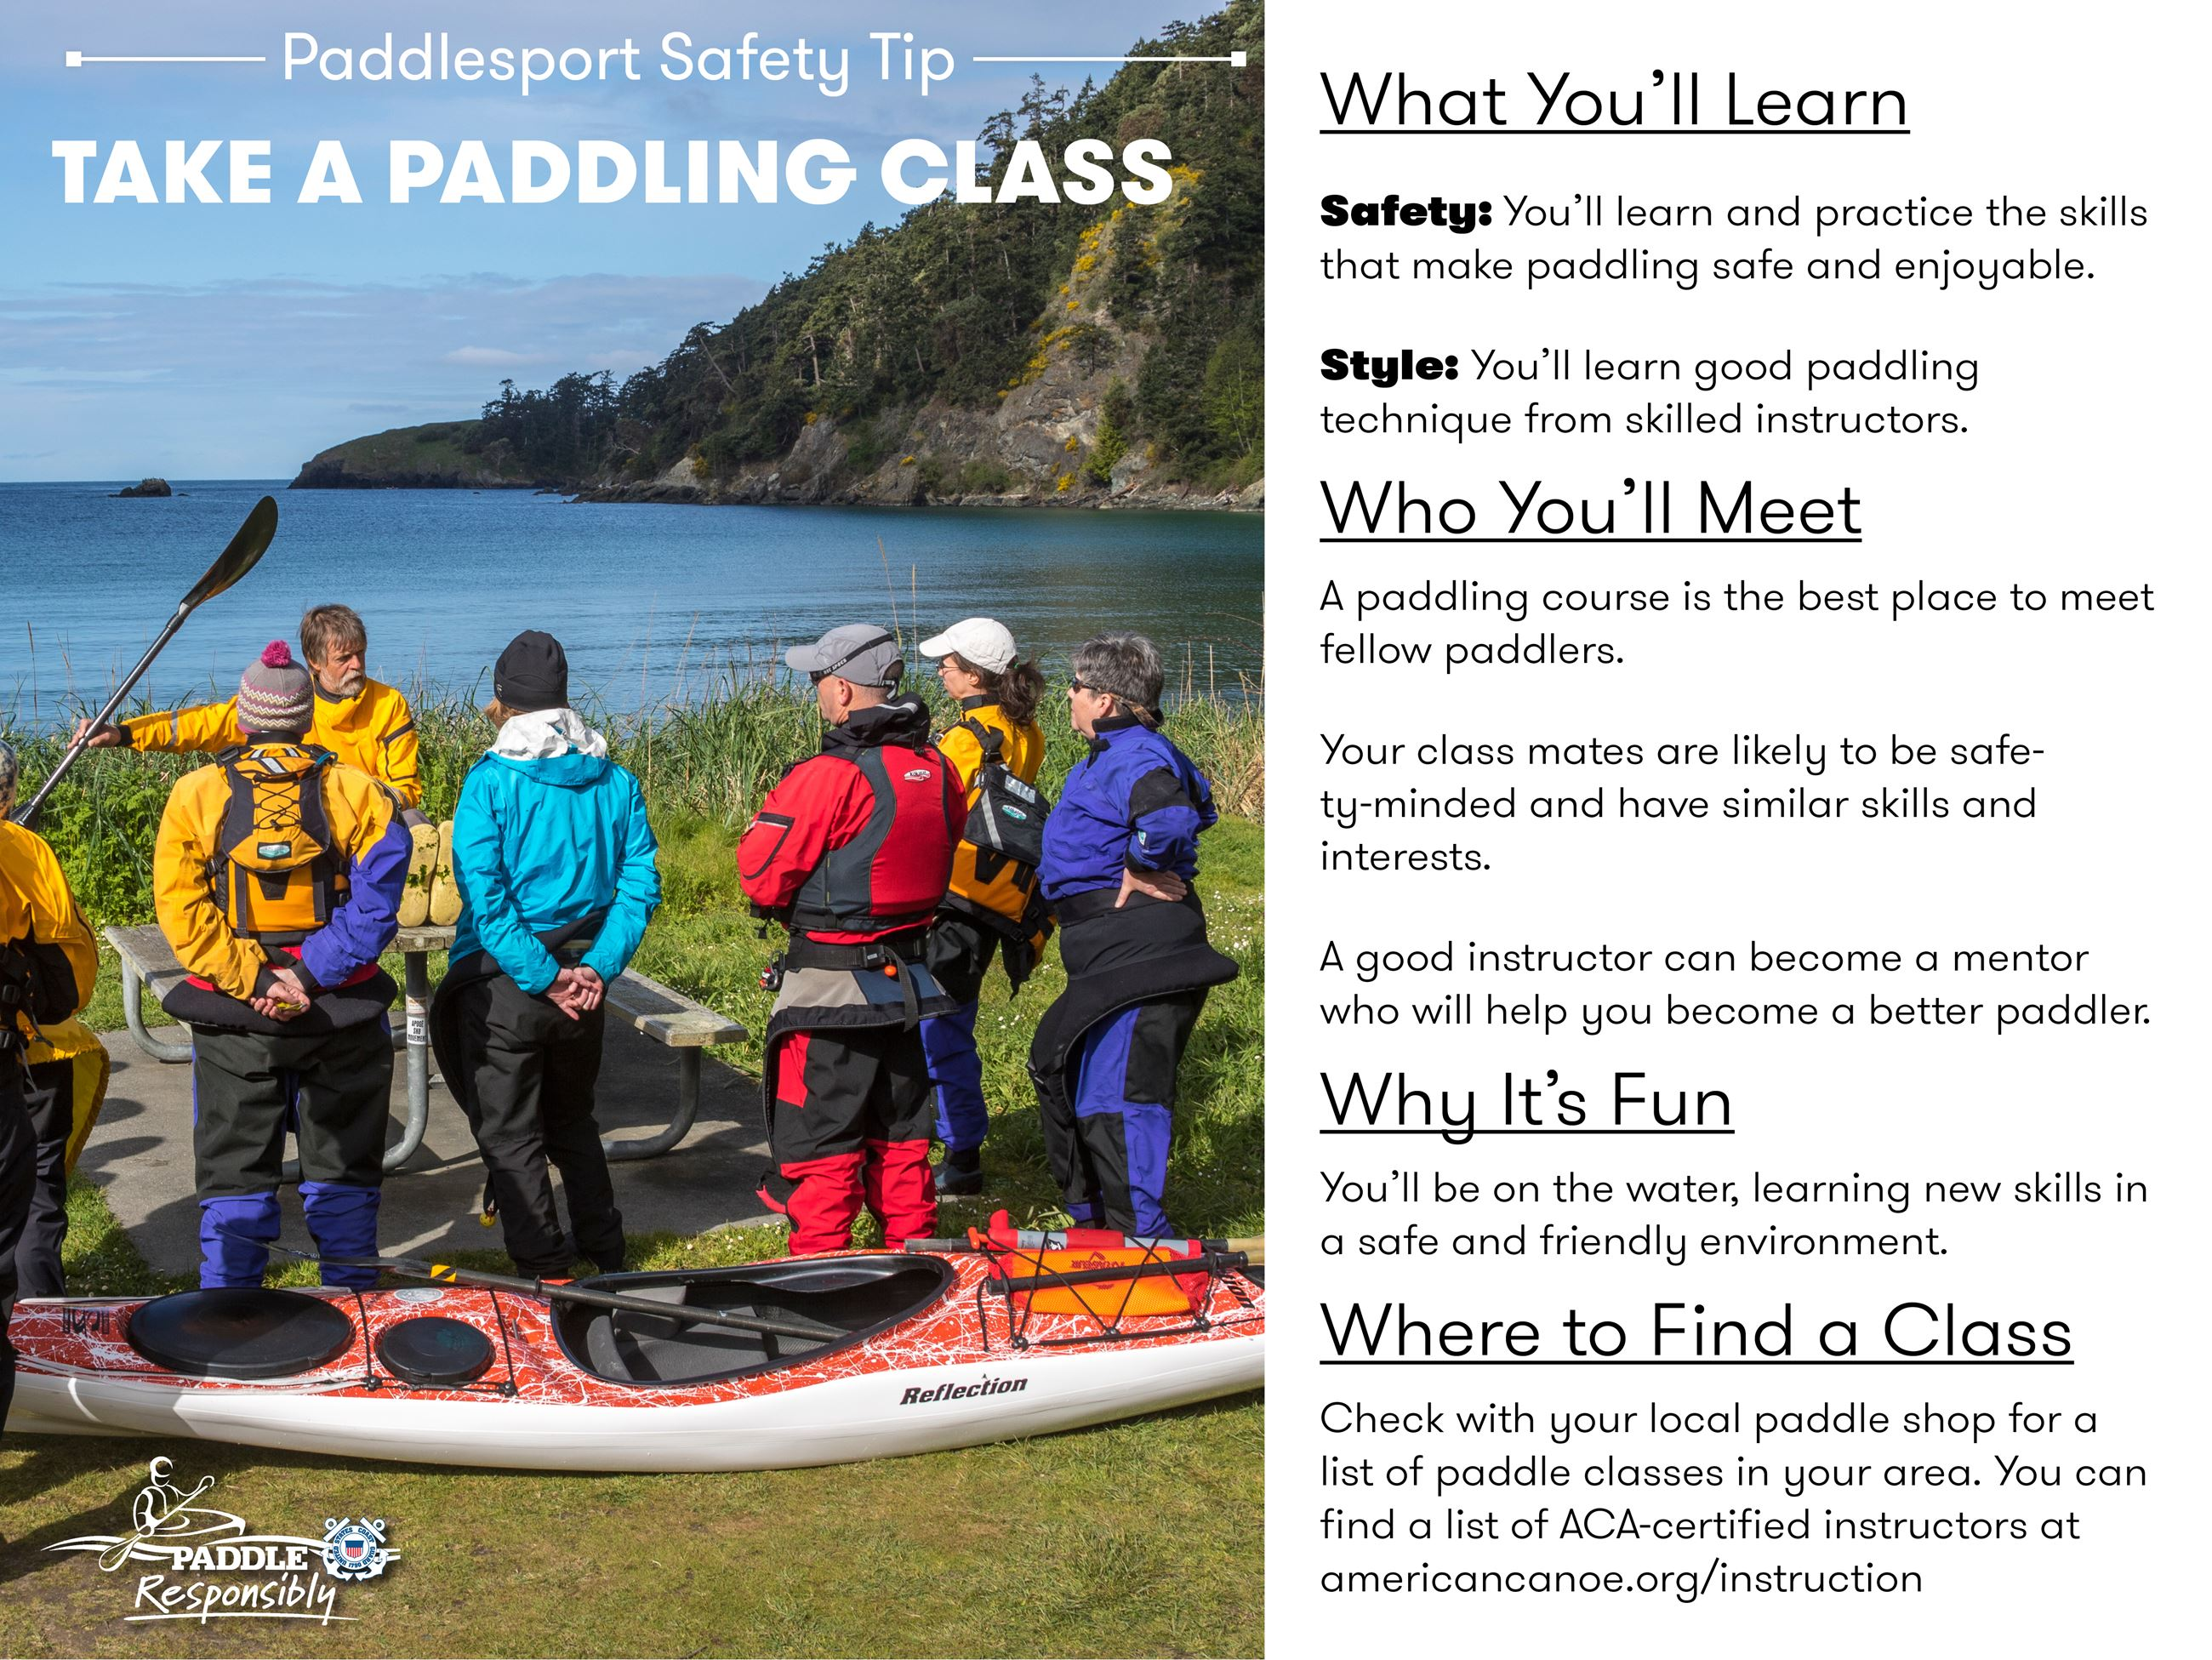 Paddlesports Safety Tip: Take a Class